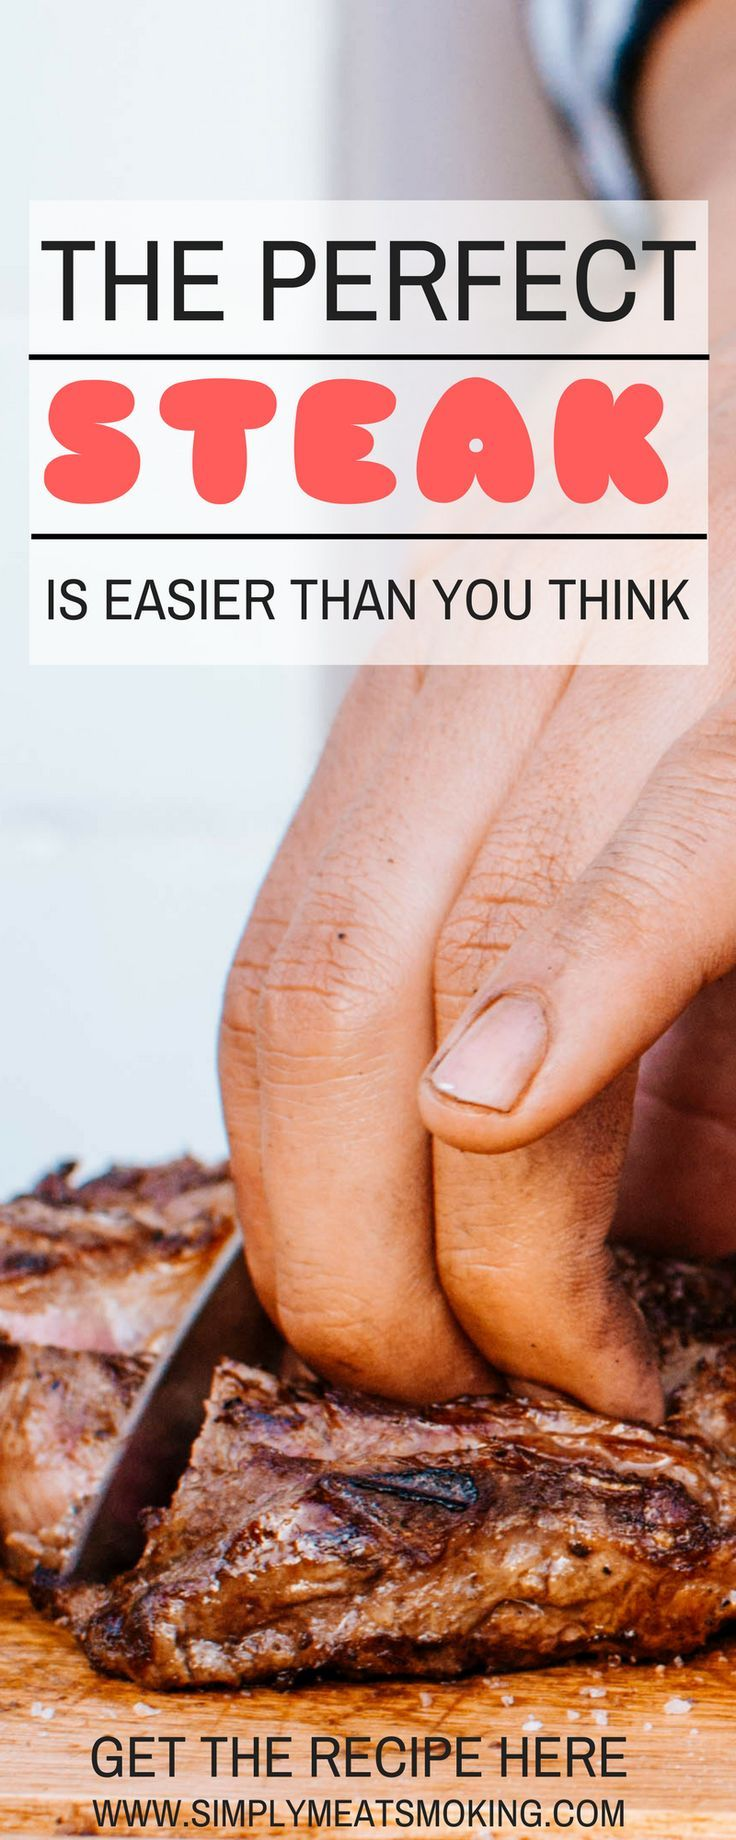 Cooking the perfect steak is easier than you think!    | Steak | Steak Recipe | Cooking Tips | Grilling Tips | Barbecue Tips | BBQ Tips | BBQ Recipe | Grilling Recipe | How To |     #Steak # BBQtips #BBQrecipe #Recipe #Barbecuerecipe